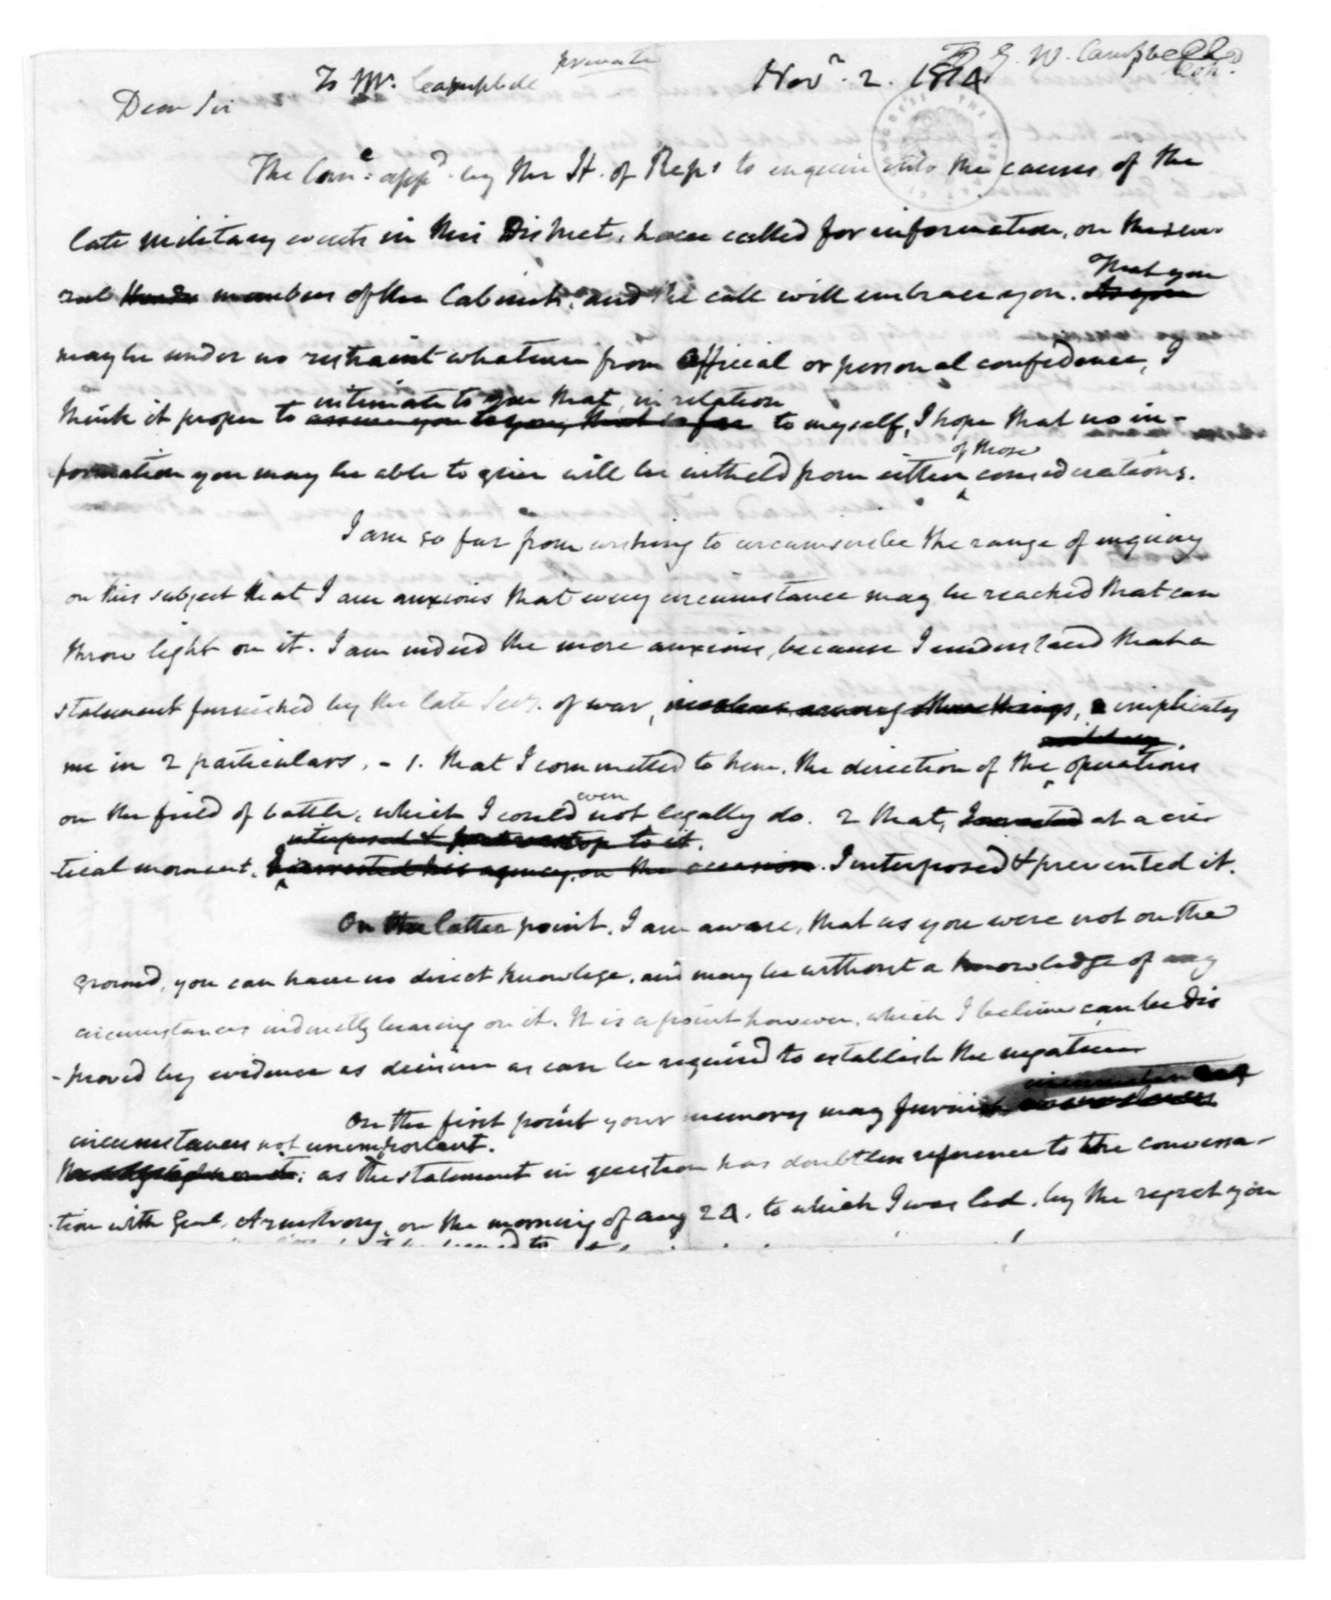 James Madison to George W. Campbell, November 2, 1814.